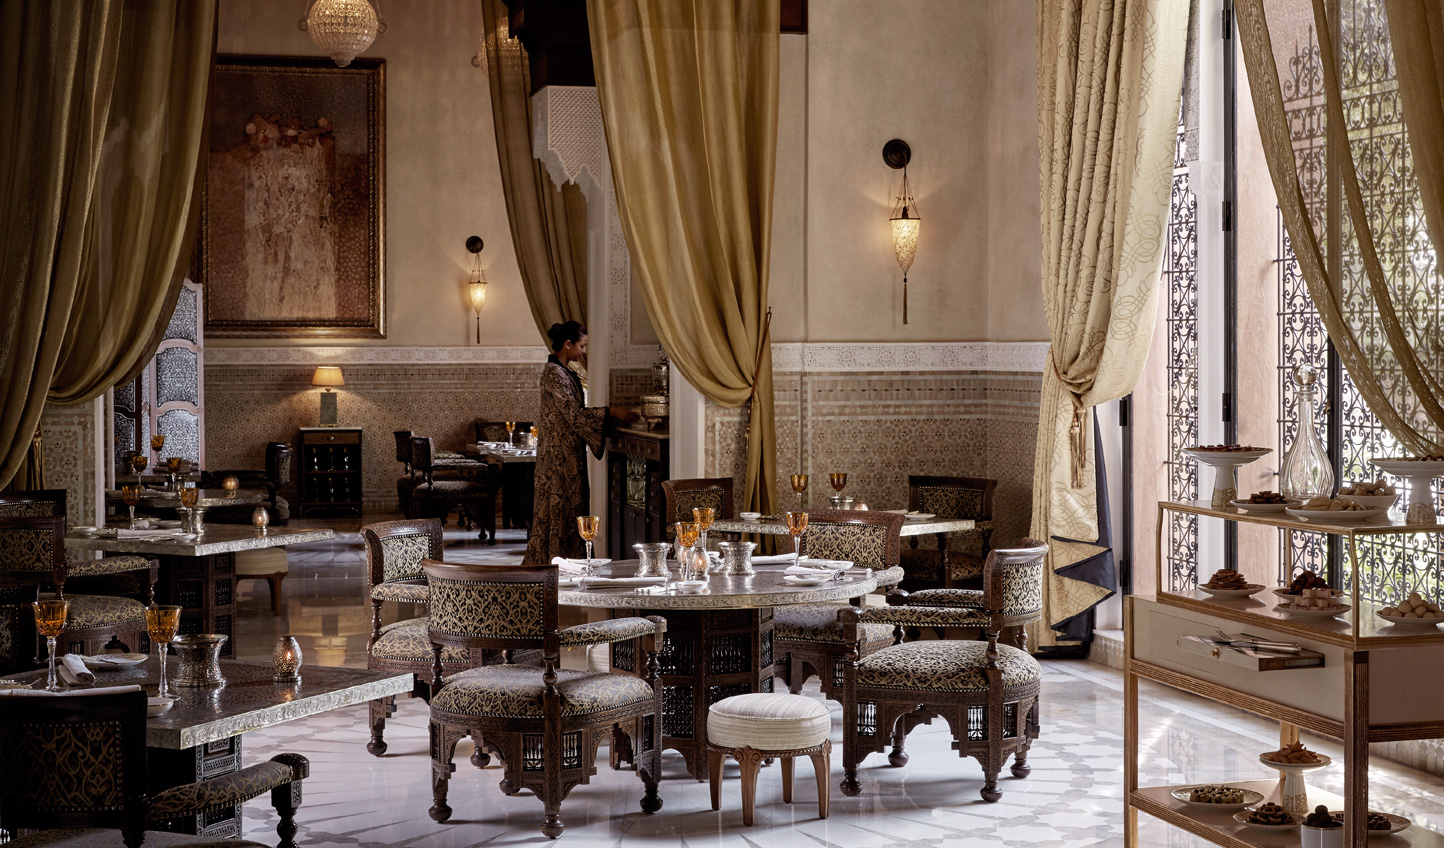 Savour the scents and spices of Morocco at La Grande Table Marocaine